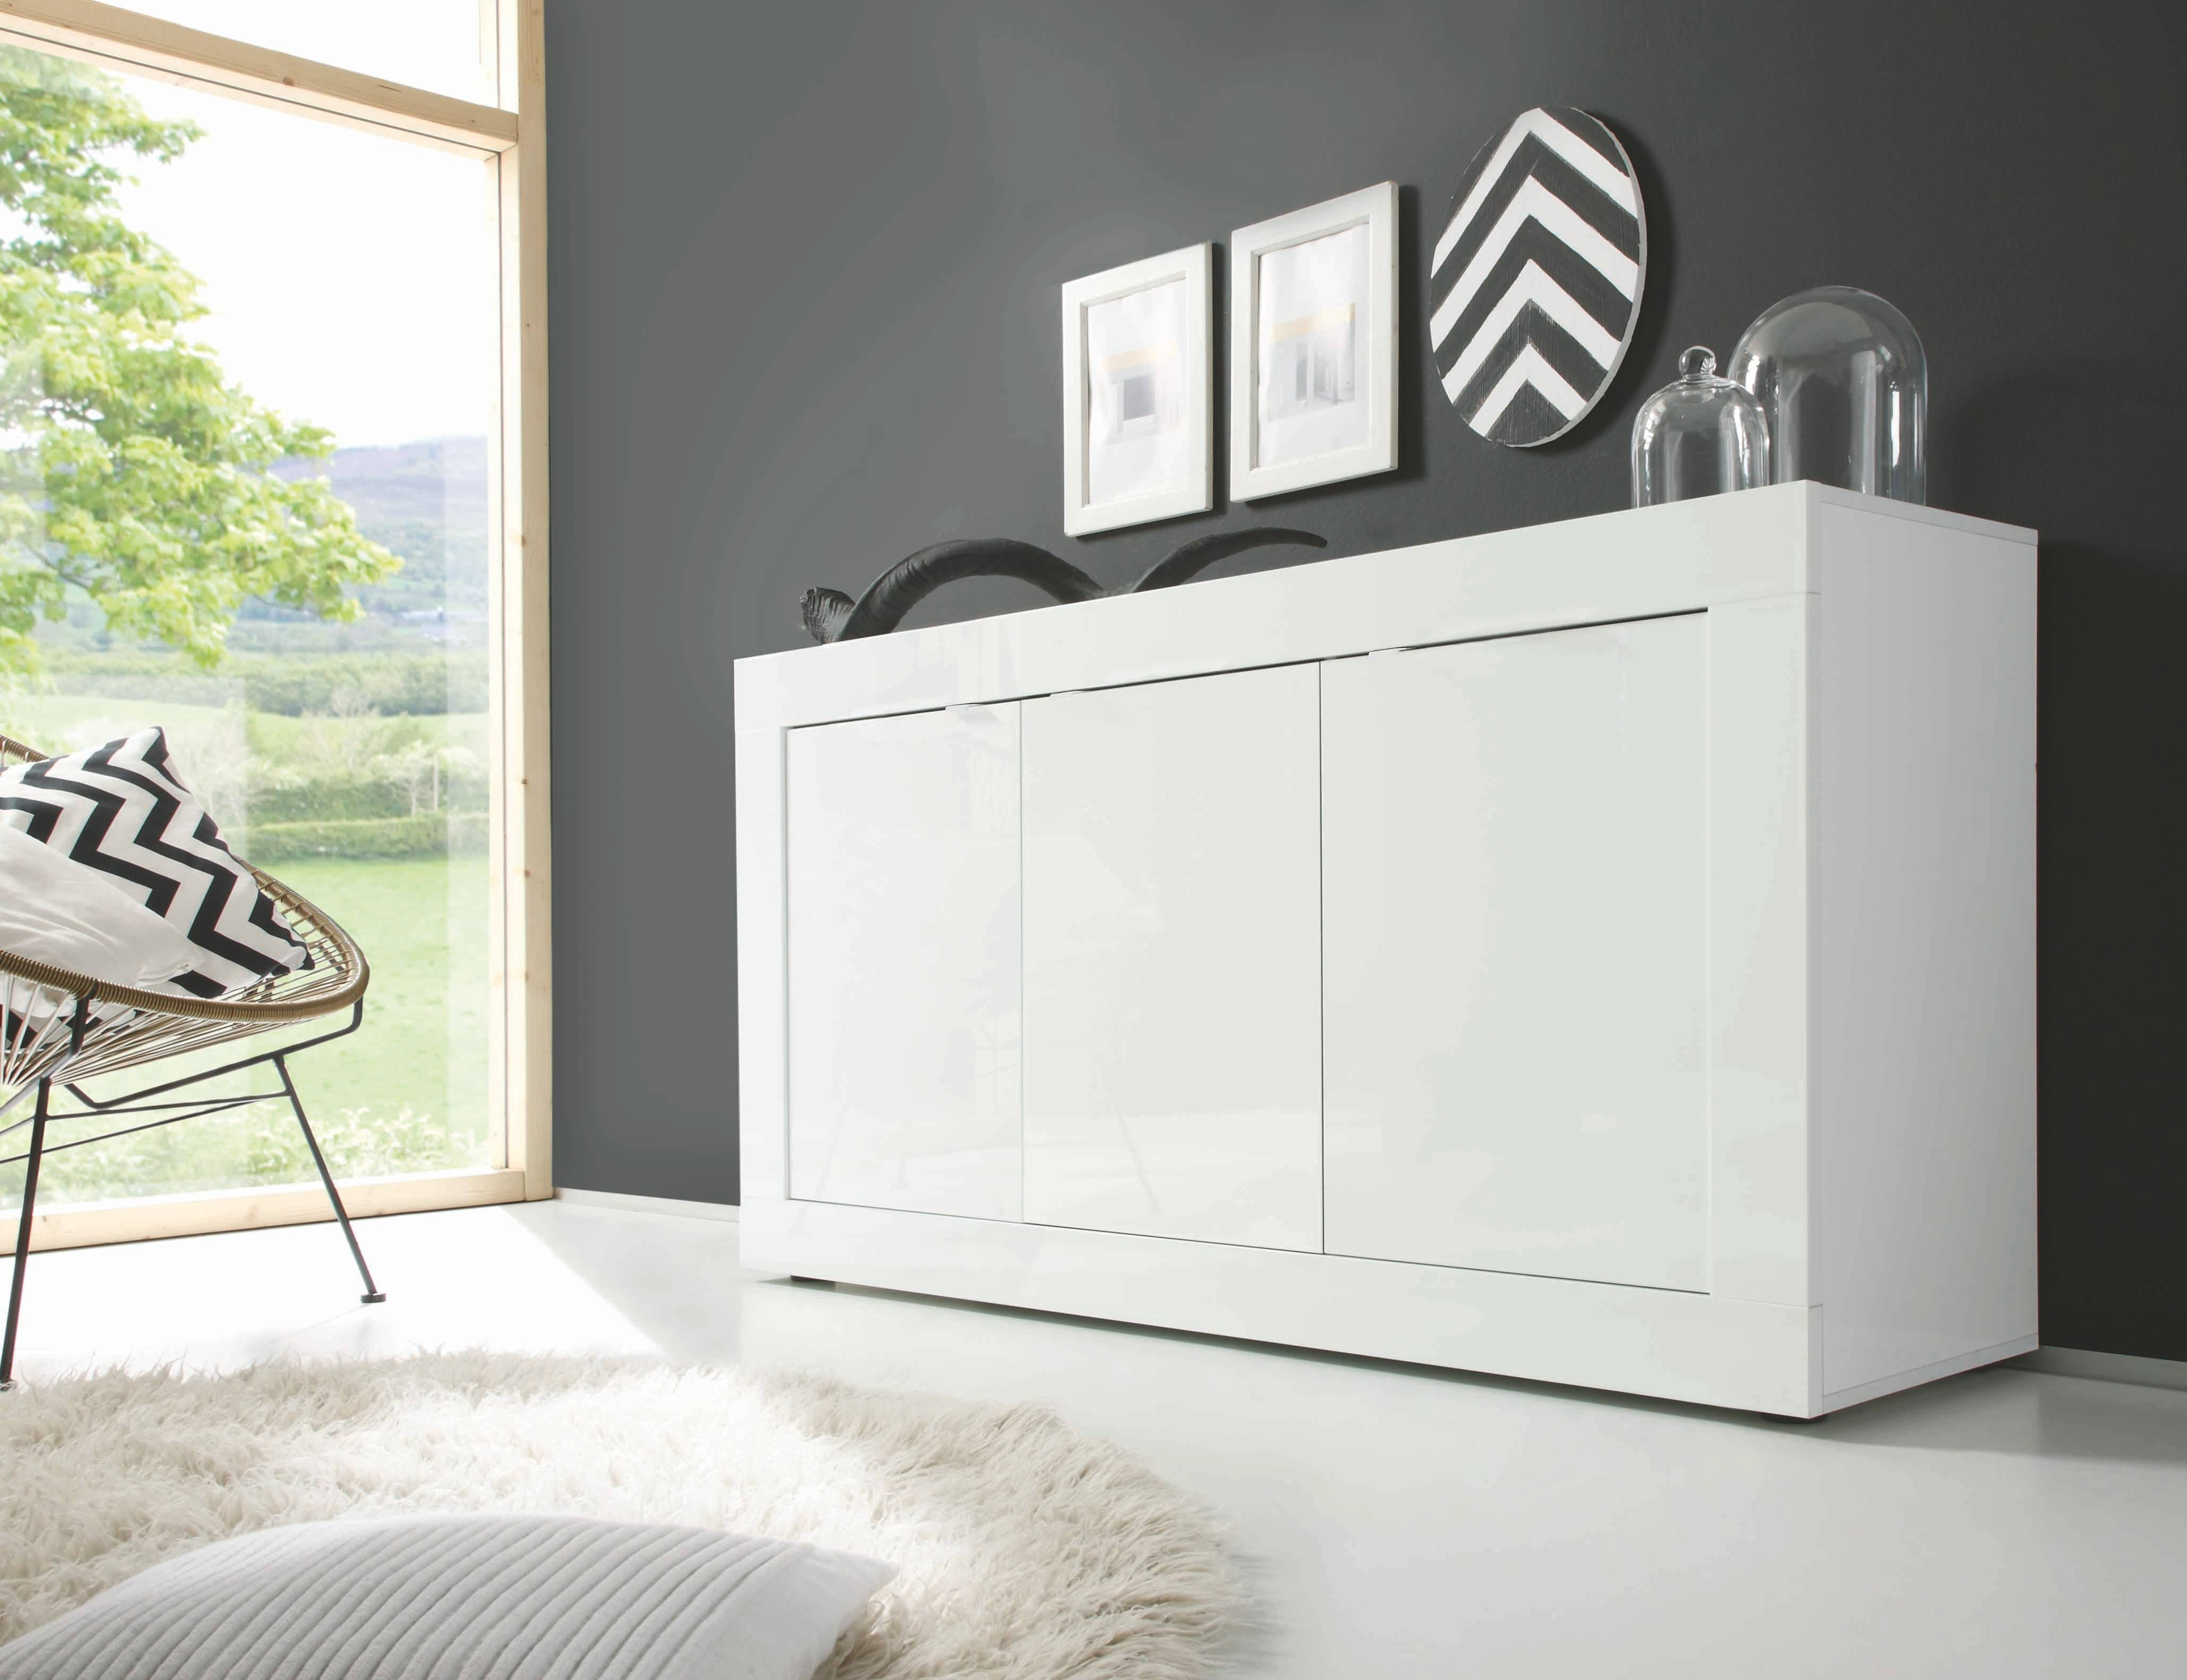 Basic 3-Door Sideboard, All White Buy Online At Best Price - Sohomod with regard to White Sideboard Furniture (Image 2 of 30)